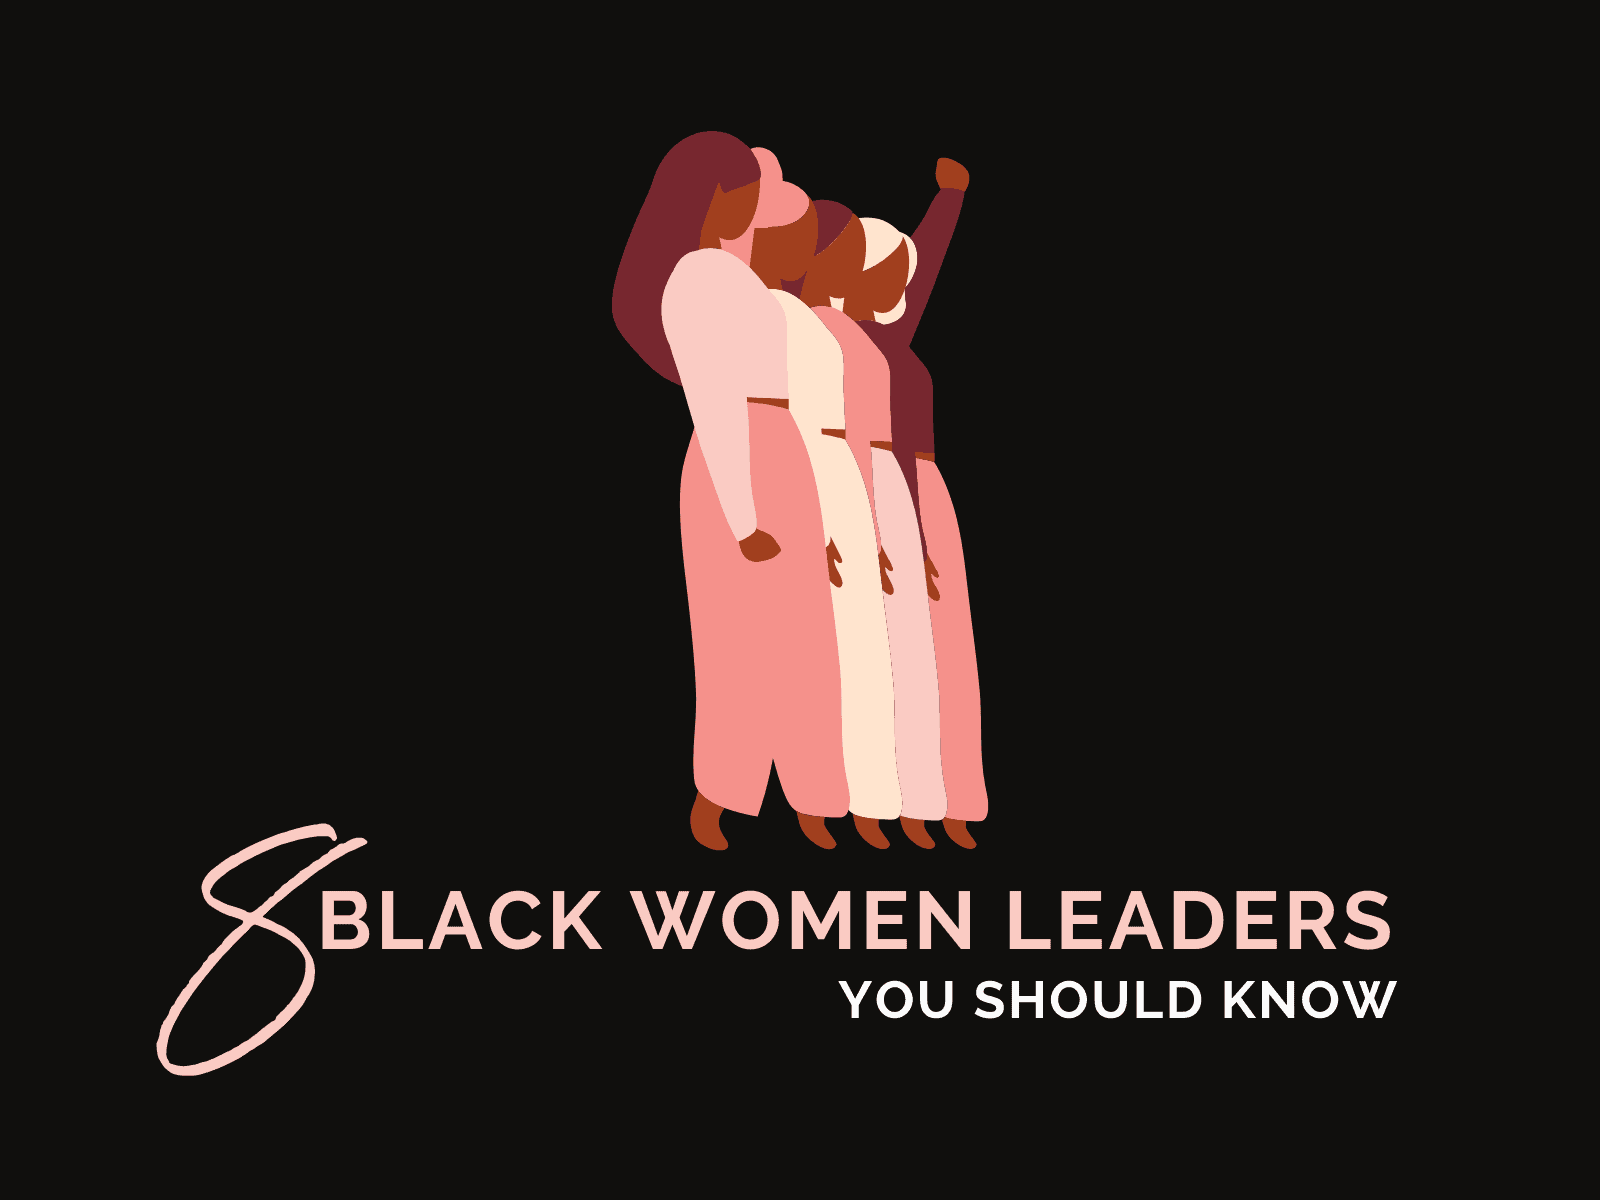 8 Black Women Leaders